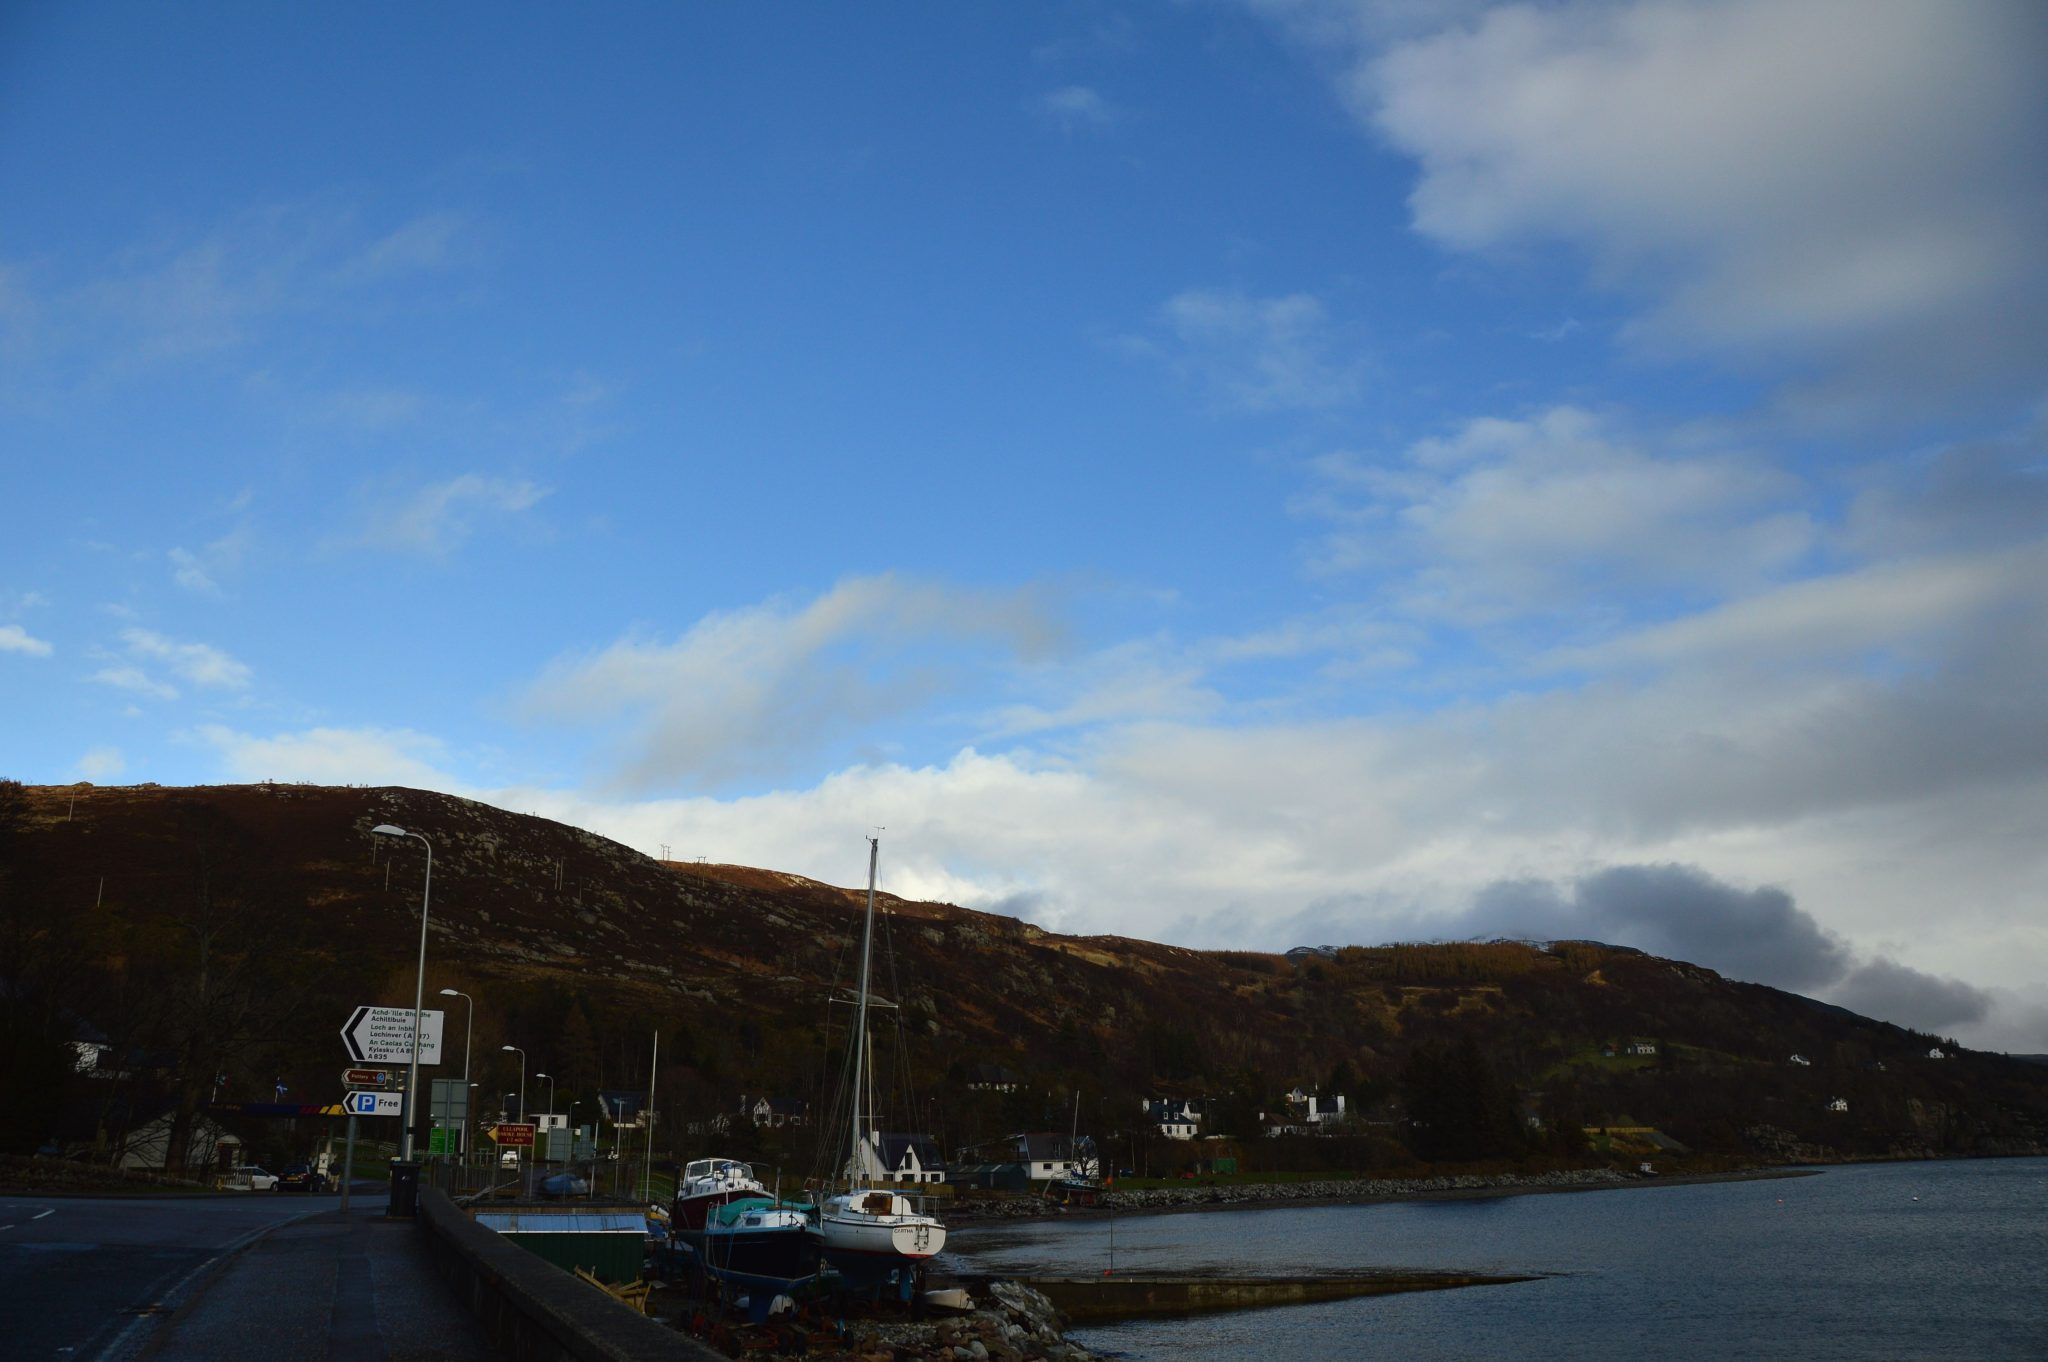 The Ullapool waterfront